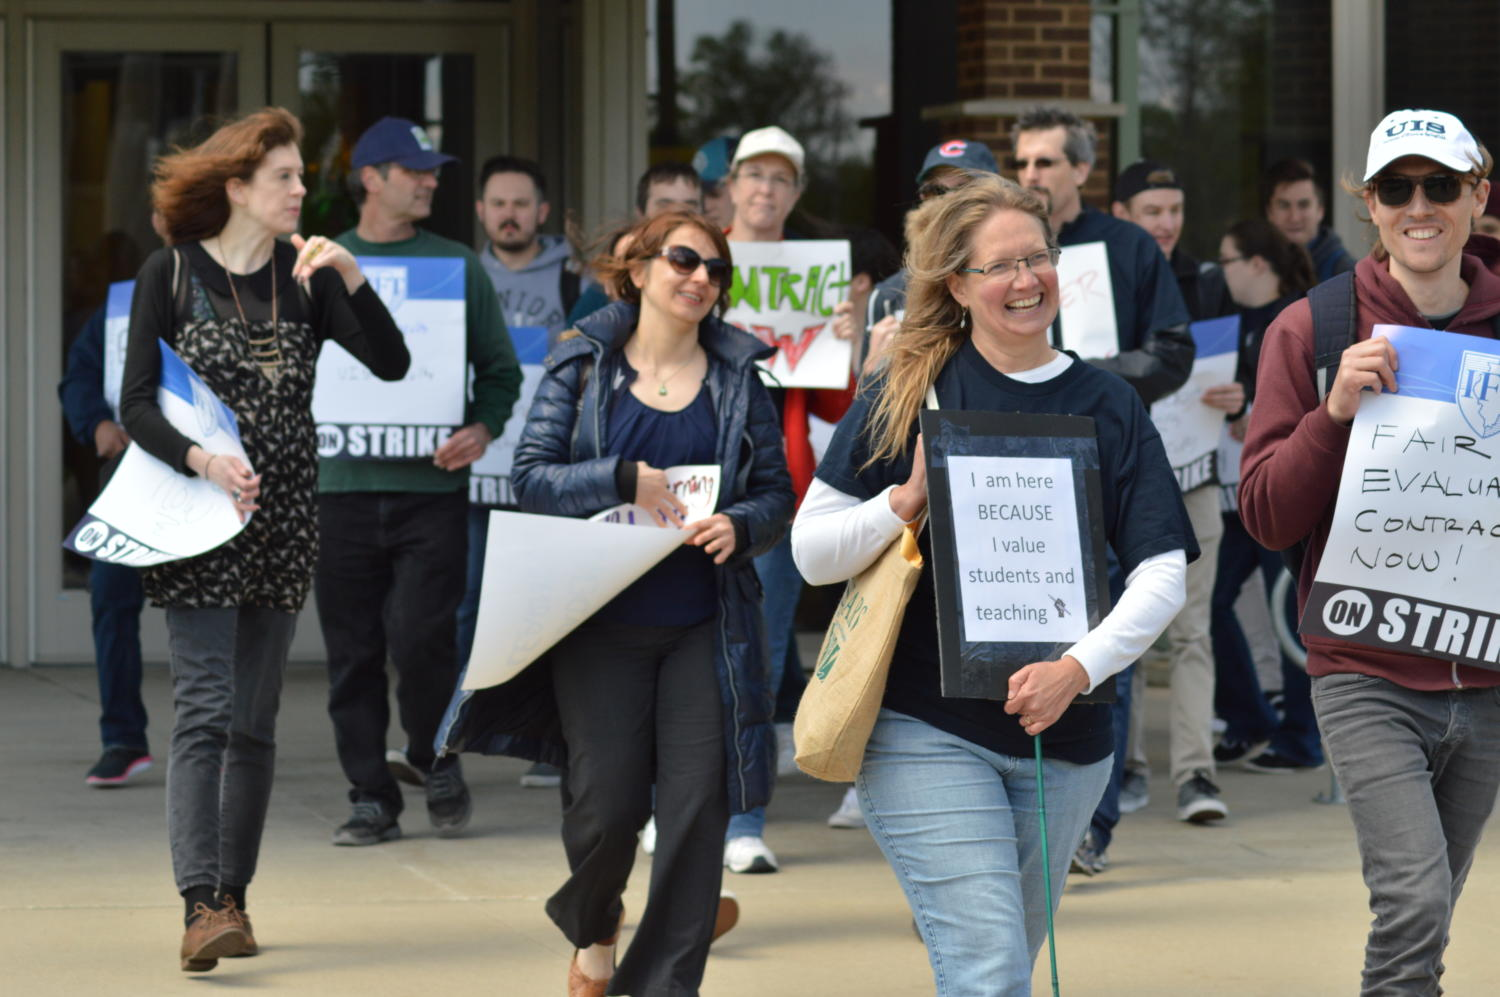 UIS faculty and supporters demonstrate outside of UHB